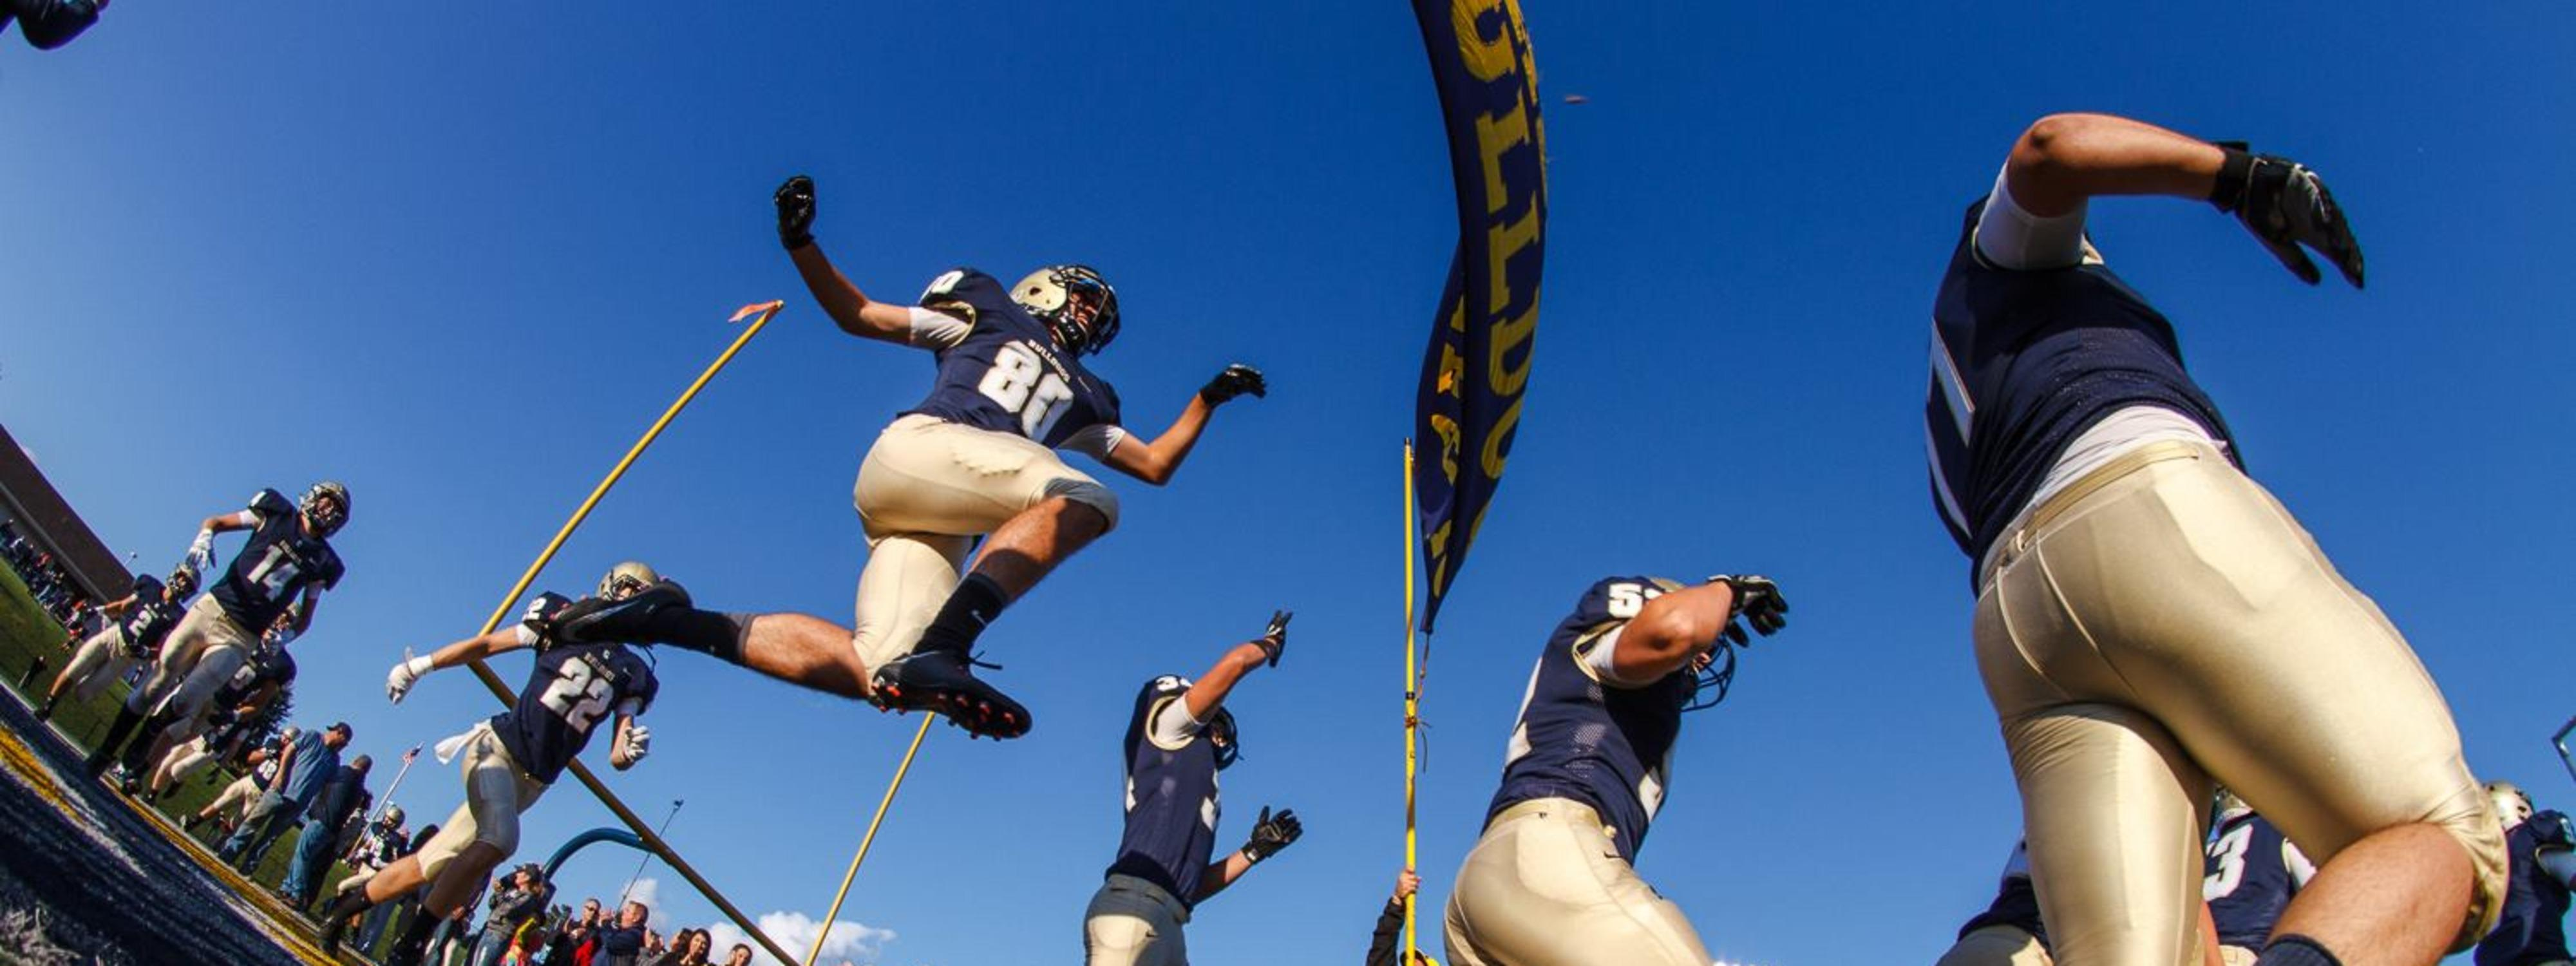 football team chelsea bulldogs jumping in air